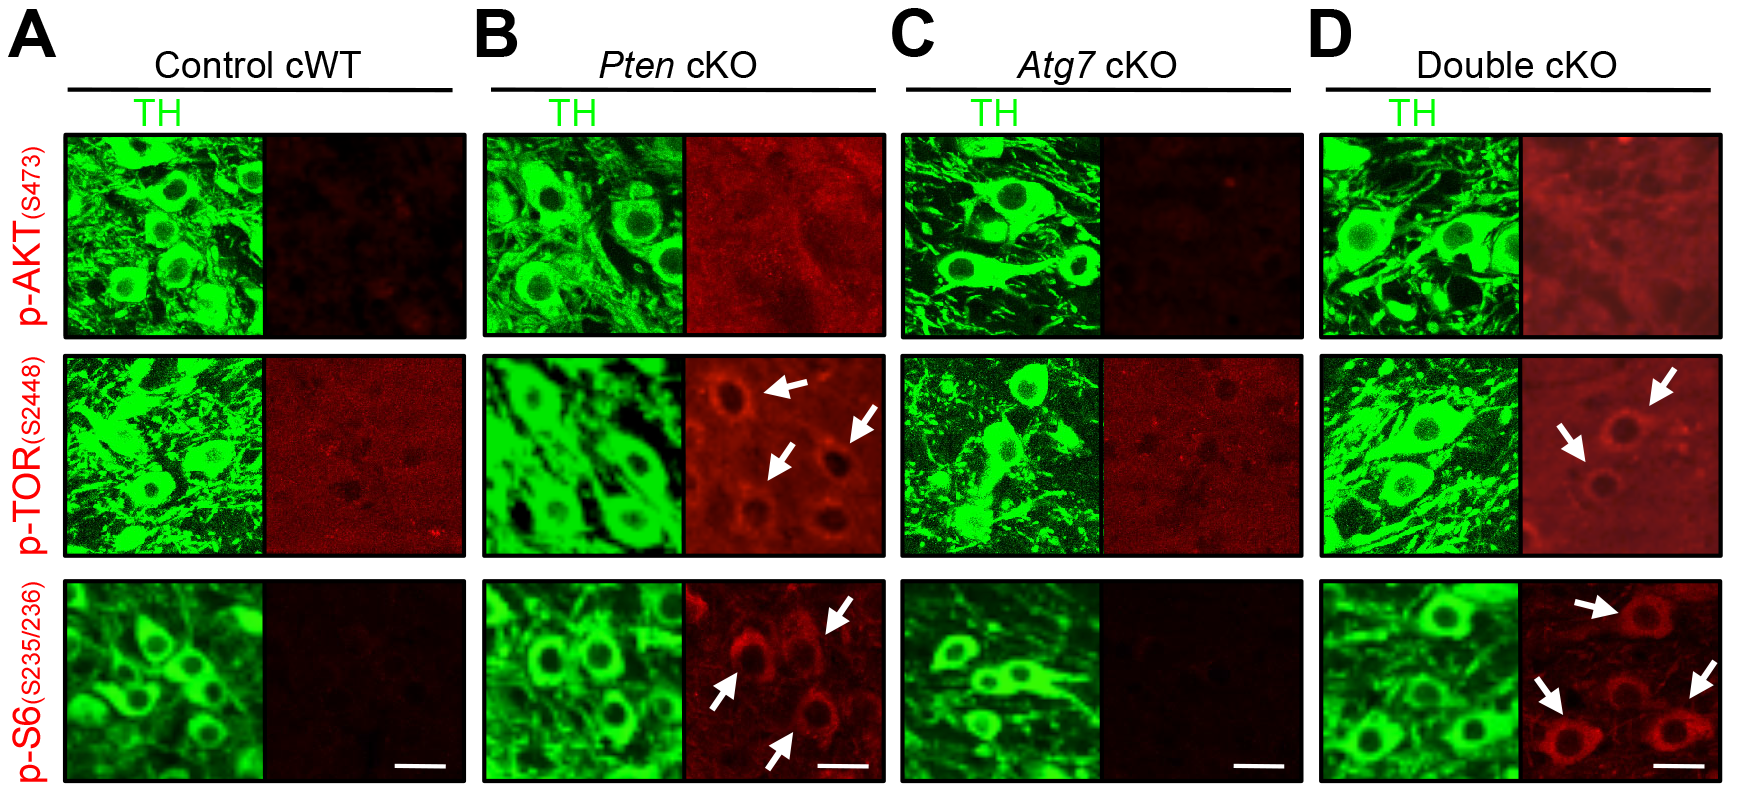 Characterization of PI3K/mTOR pathways in TH-positive DA neurons of <i>Atg7</i> and/or <i>Pten</i> cKO mice.